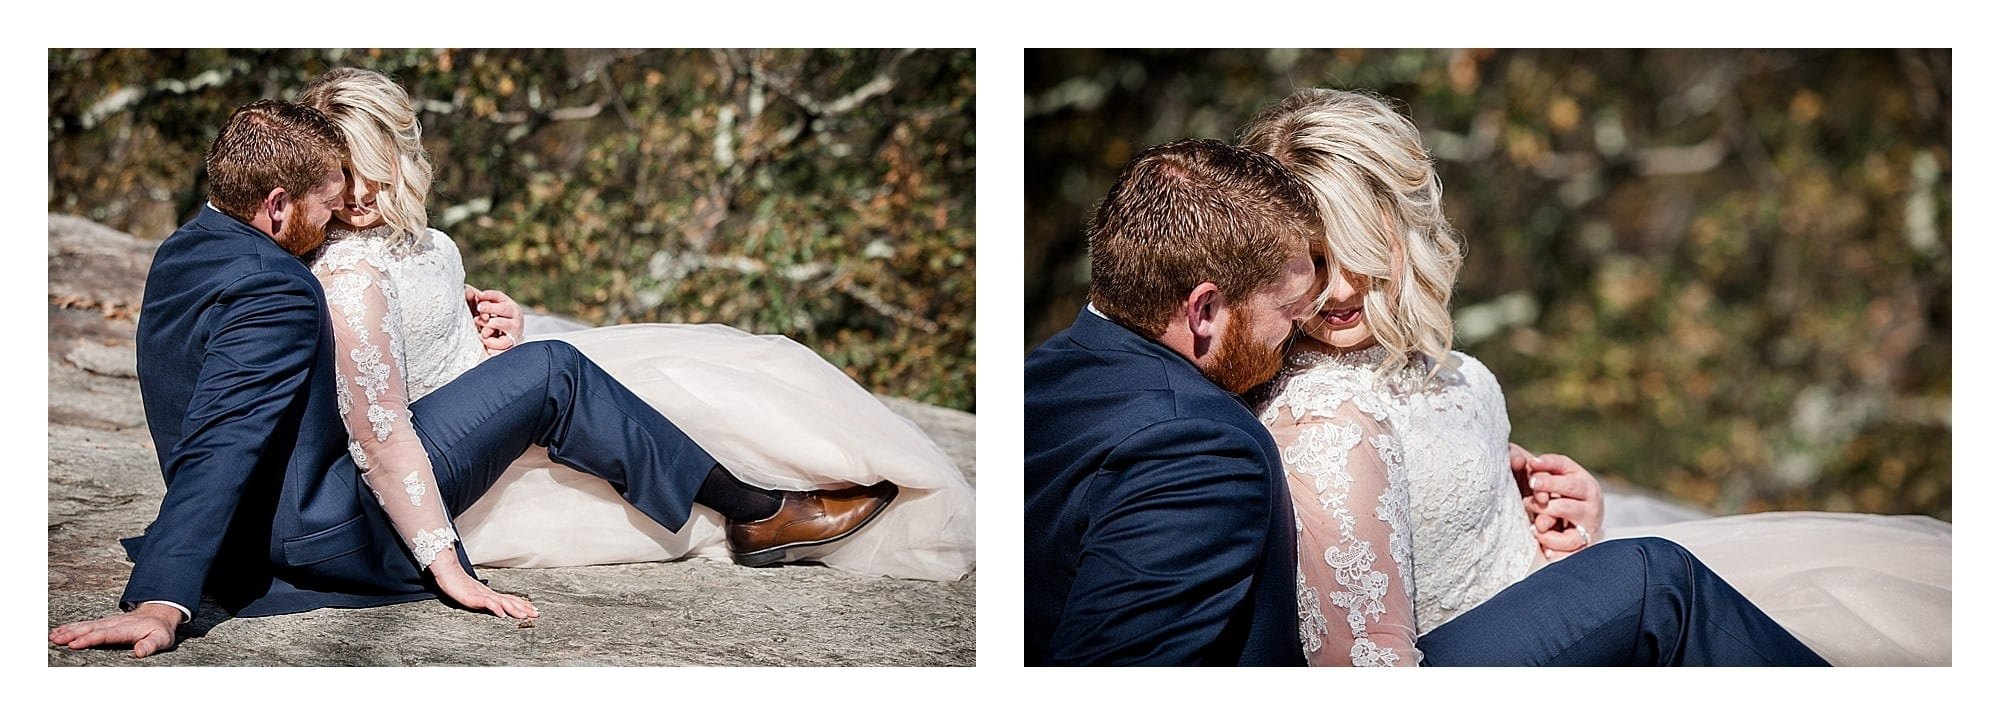 Wedding Photographs at Pretty Place by Kathy Beaver Photography